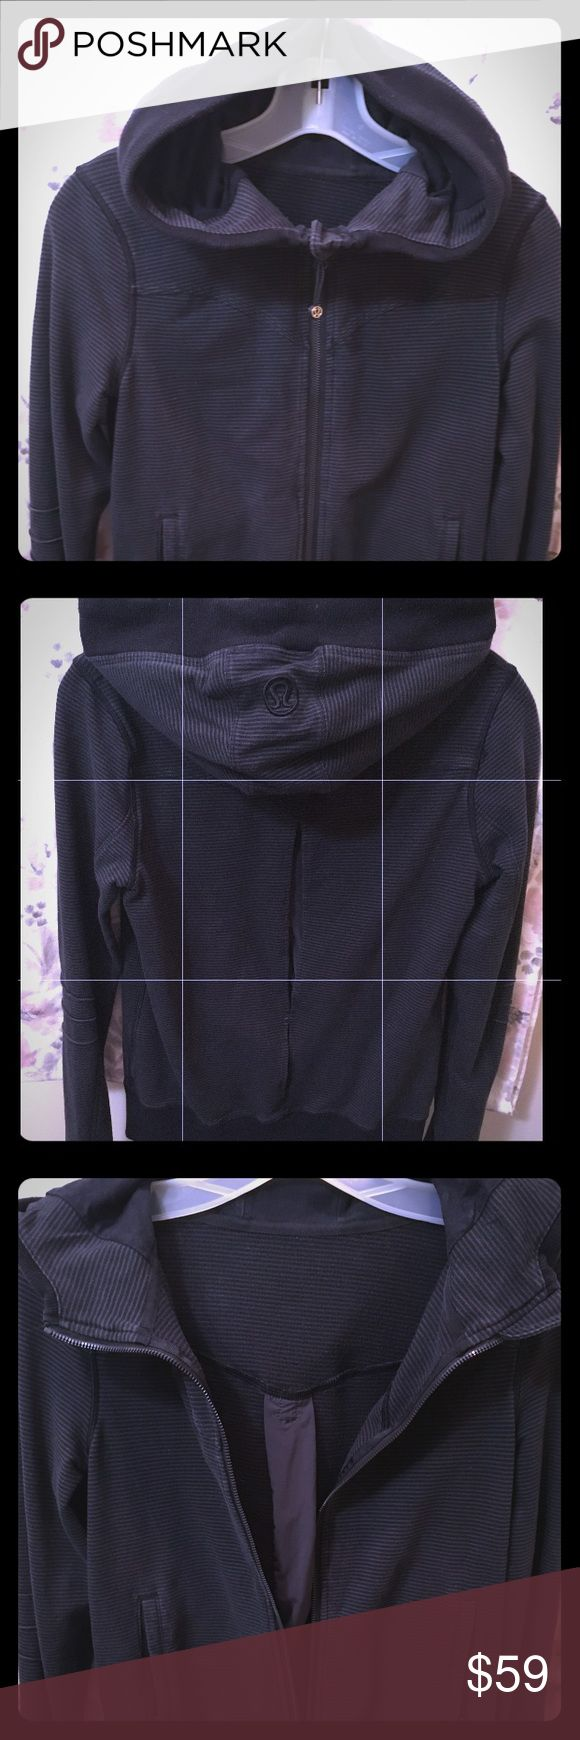 Lululemon Black Wee Striped Zip Up Hooded Jacket 6 Lululemon Black/Gray Wee Striped Zip Up Hooded Jacket w/Thumb Holes & dual material back slit! Size 6. Excellent Condition, No holes, stains or wear! Perfect with Stretch - barely worn! Great Jacket! lululemon athletica Jackets & Coats